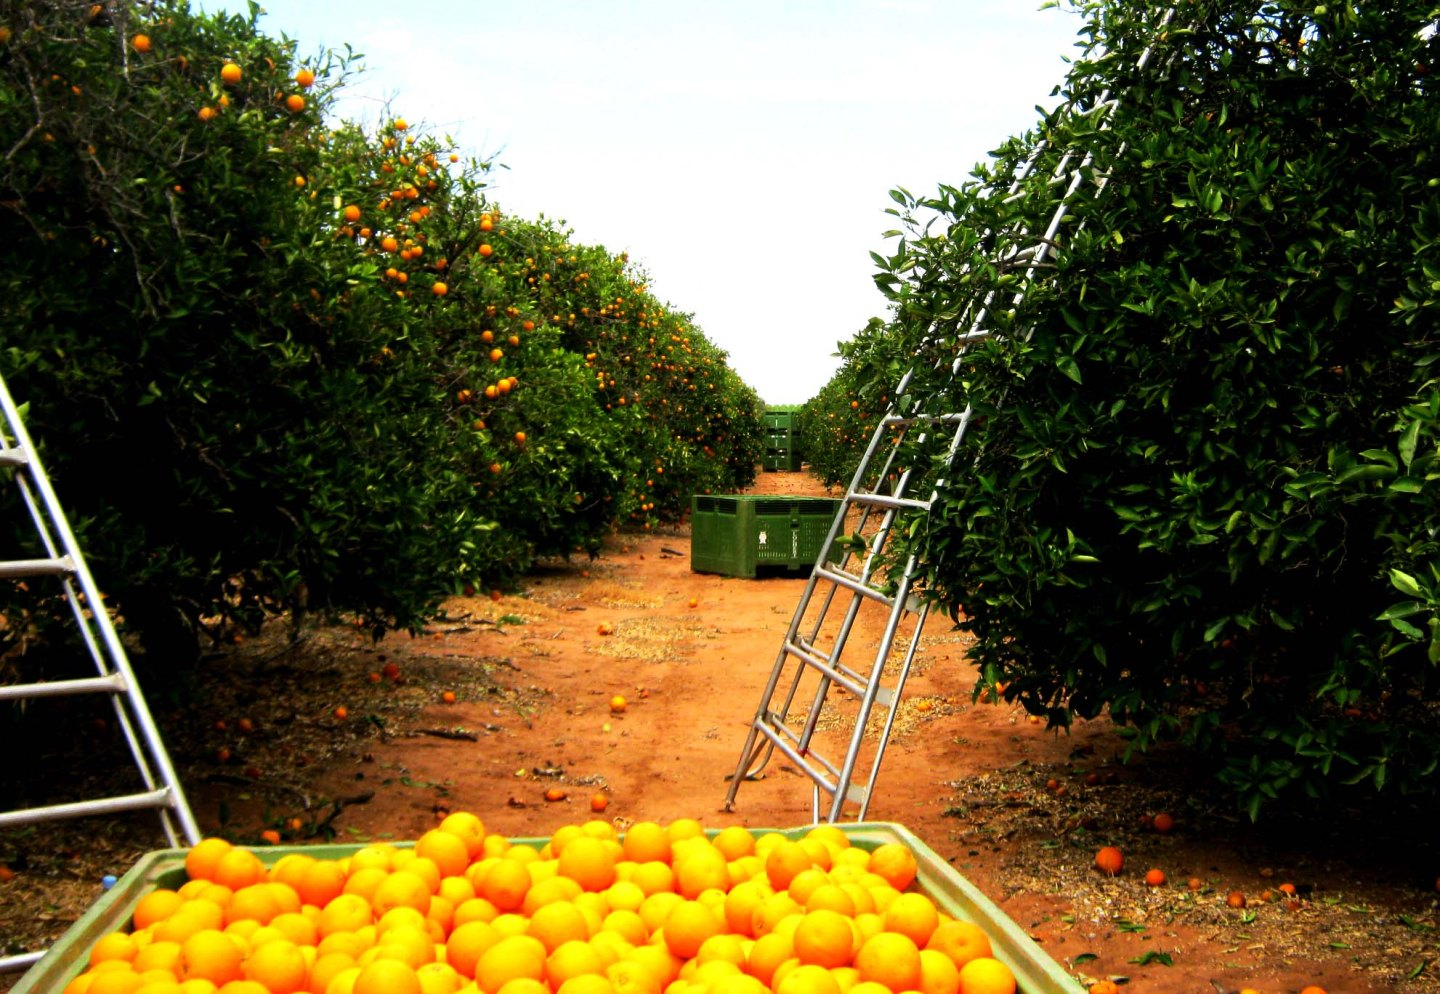 Top tips for fruit picking in Australia